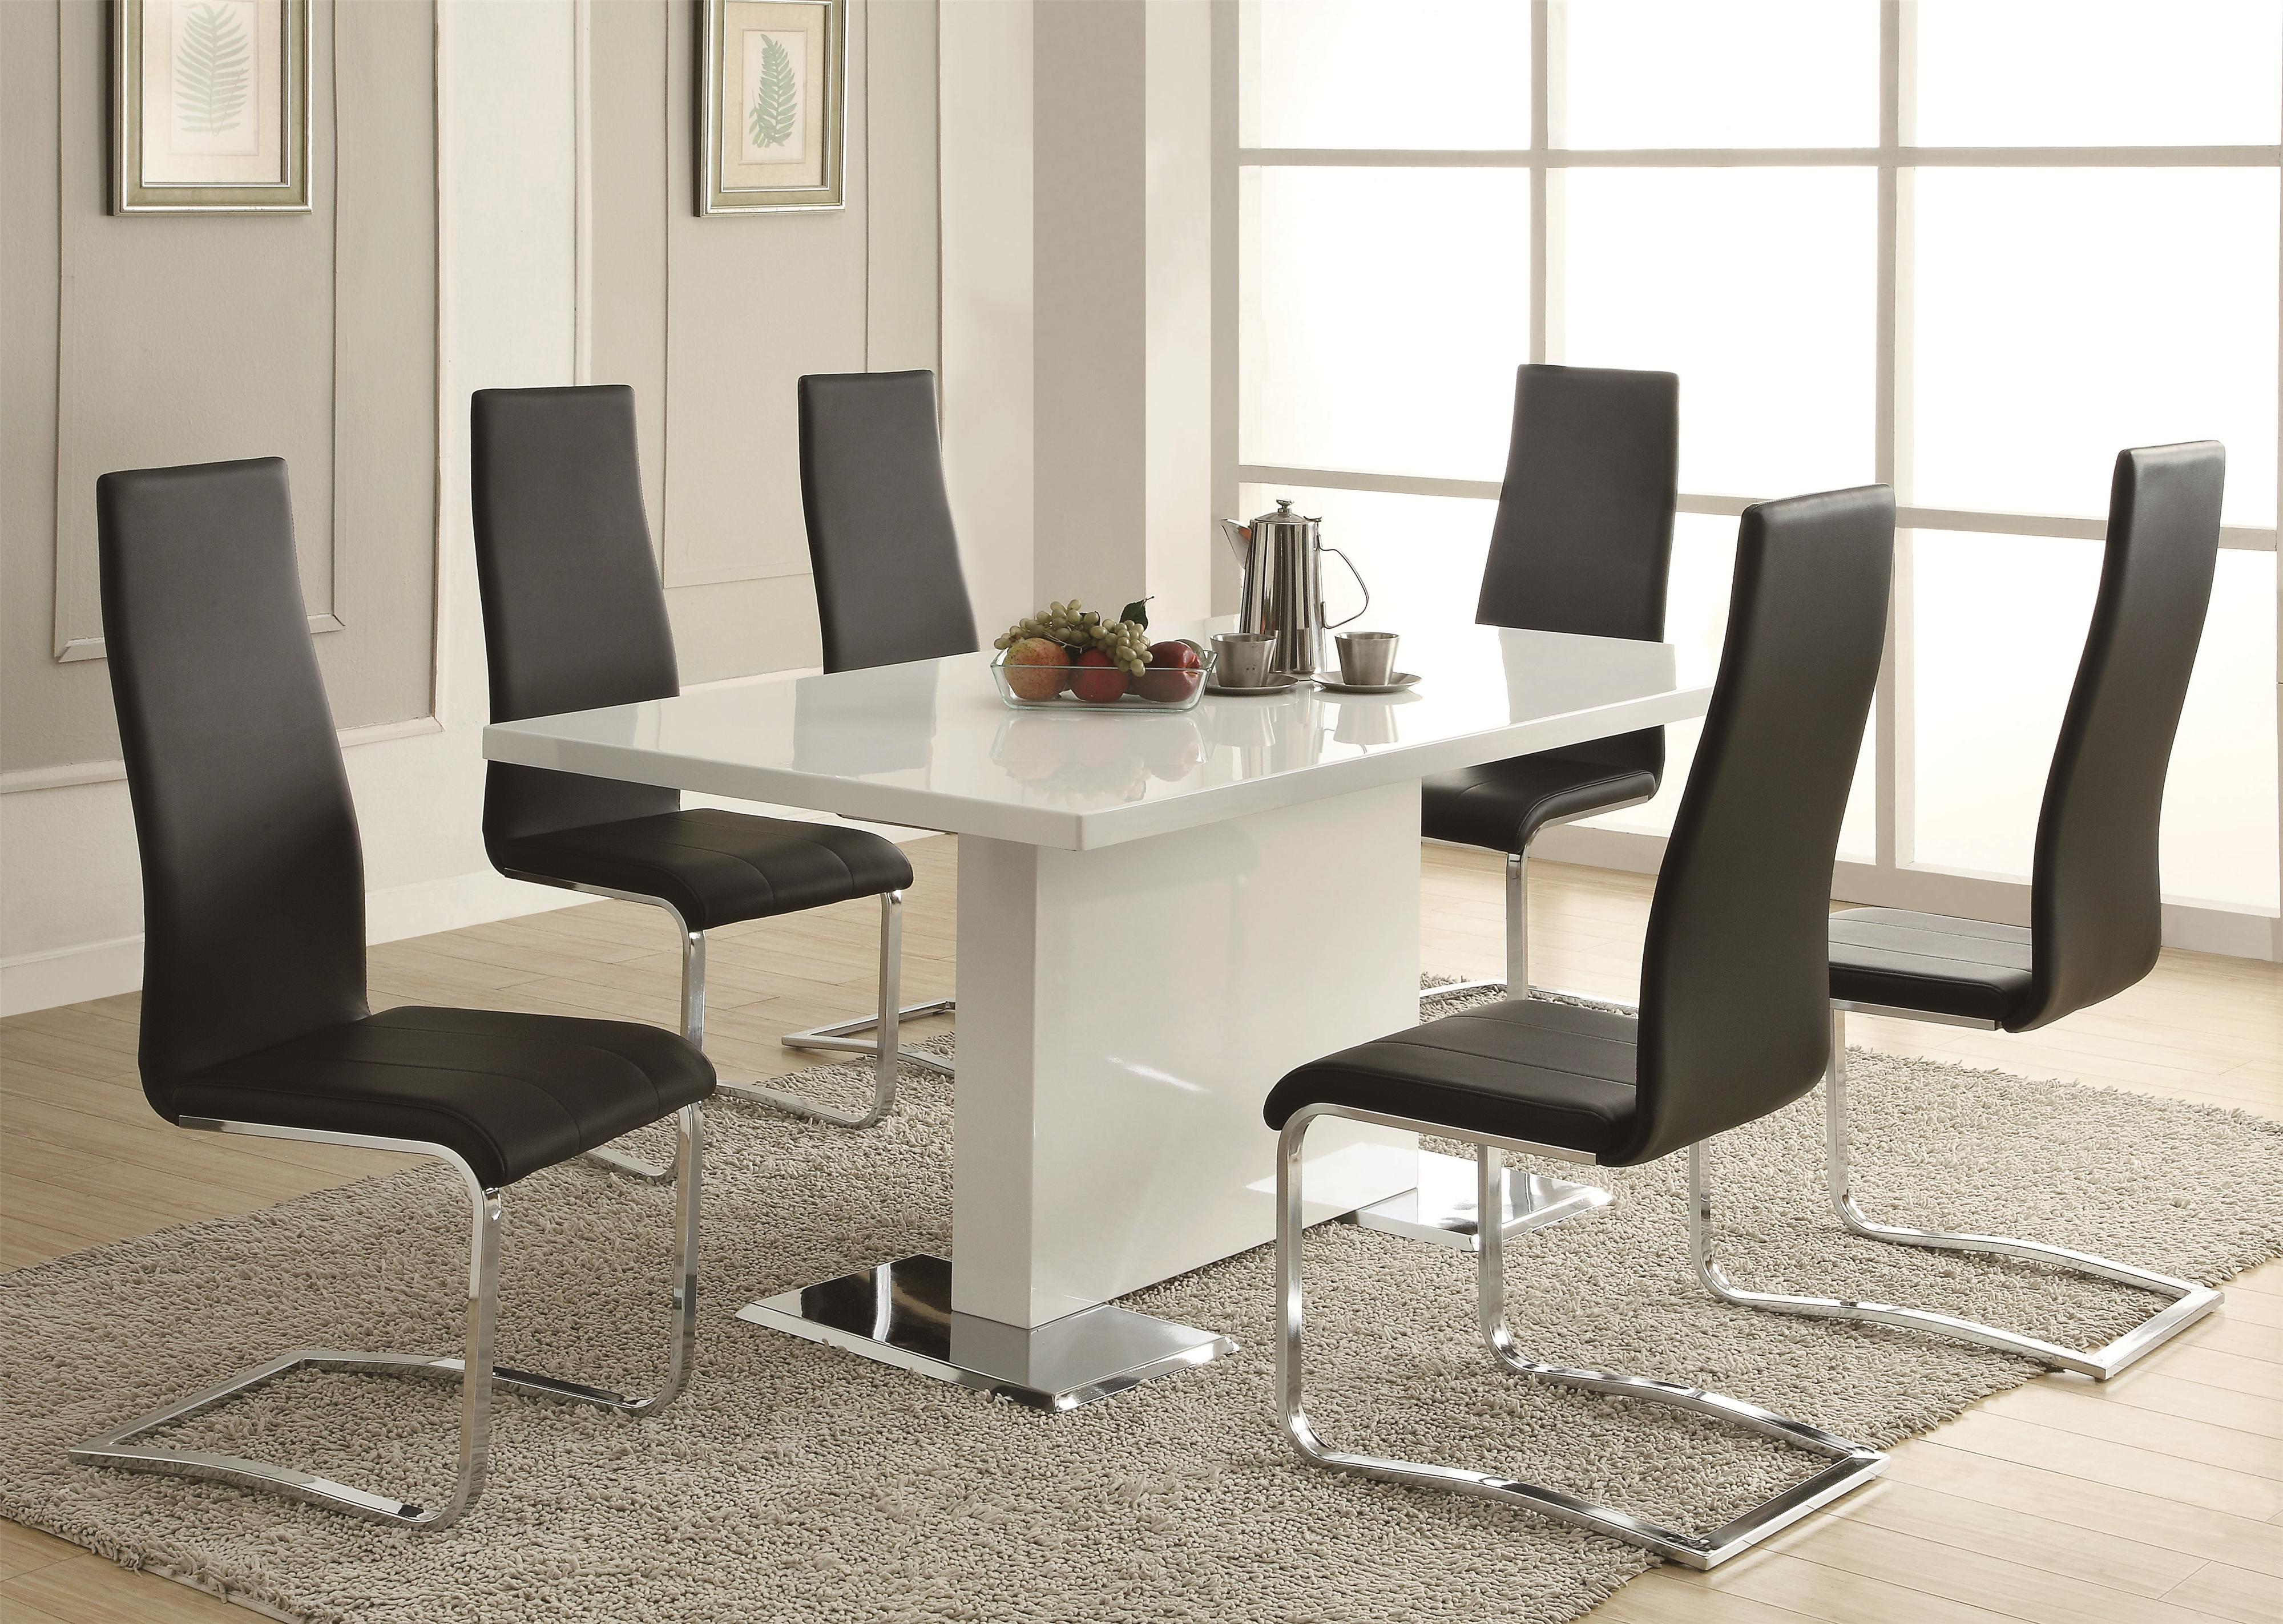 Coaster Modern Dining 7 Piece Table & Chair Set - Item Number: 102310+6x100515BLK